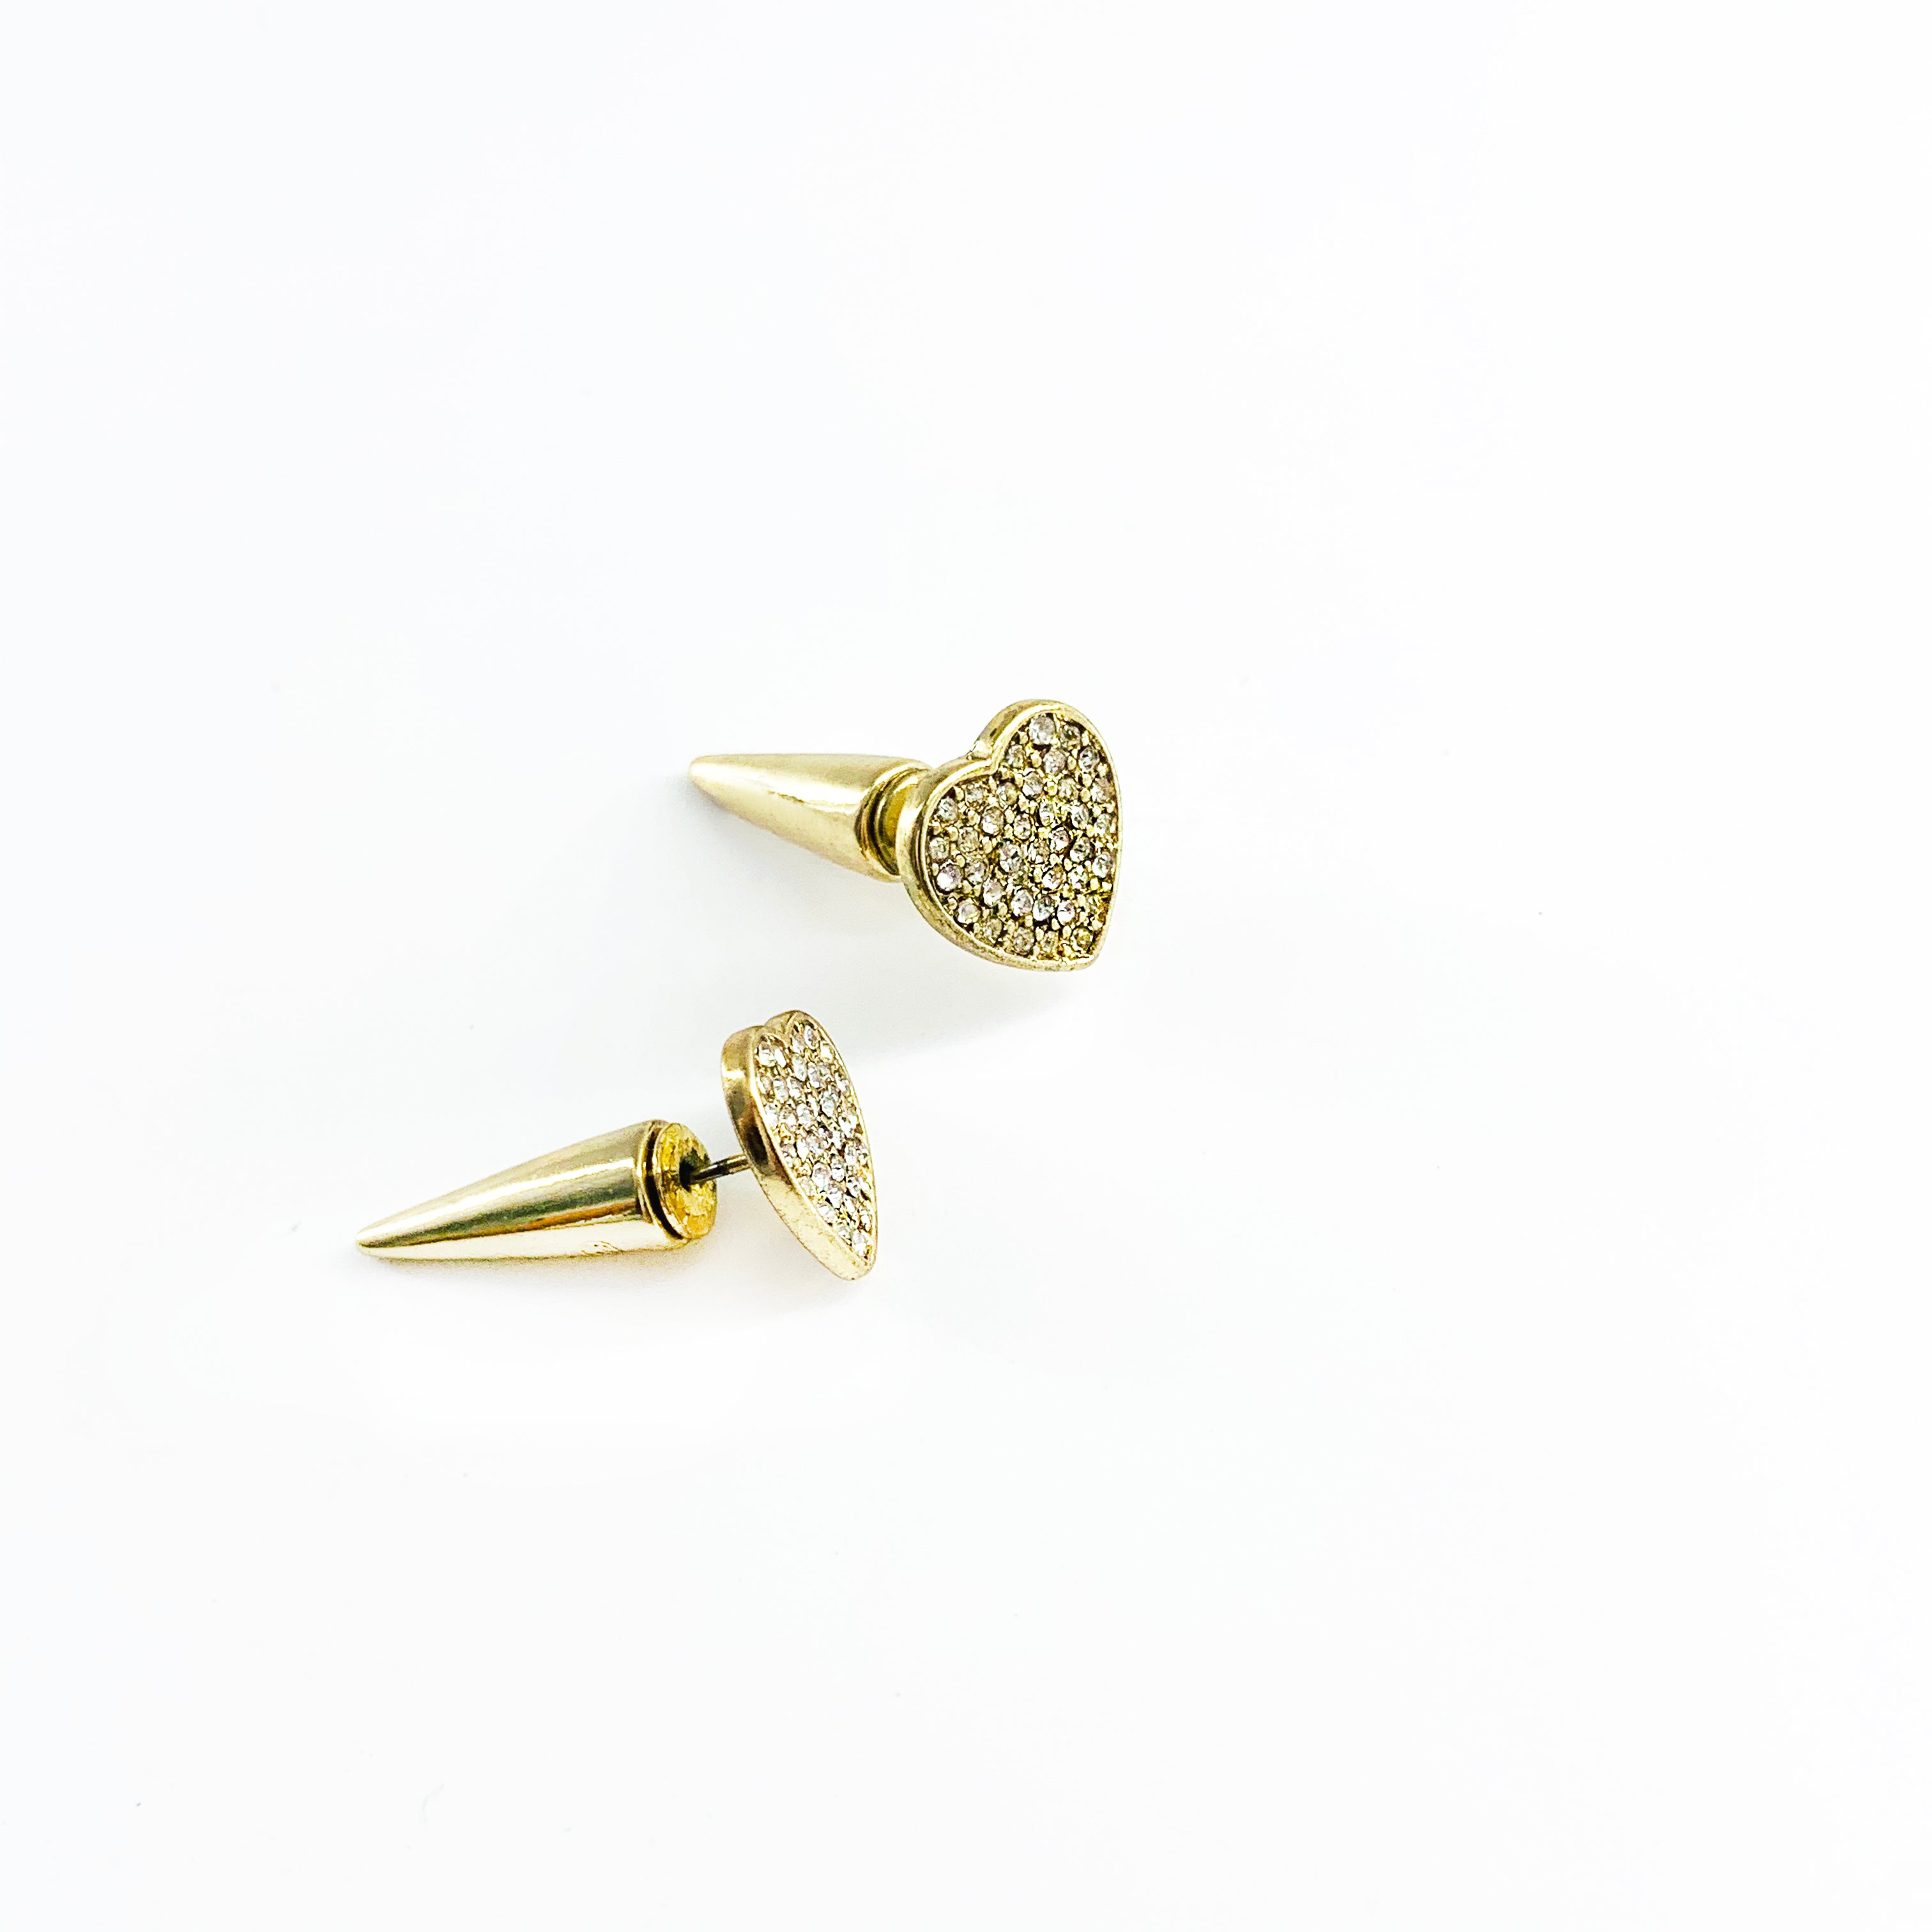 Gold diamante-encrusted heart earrings